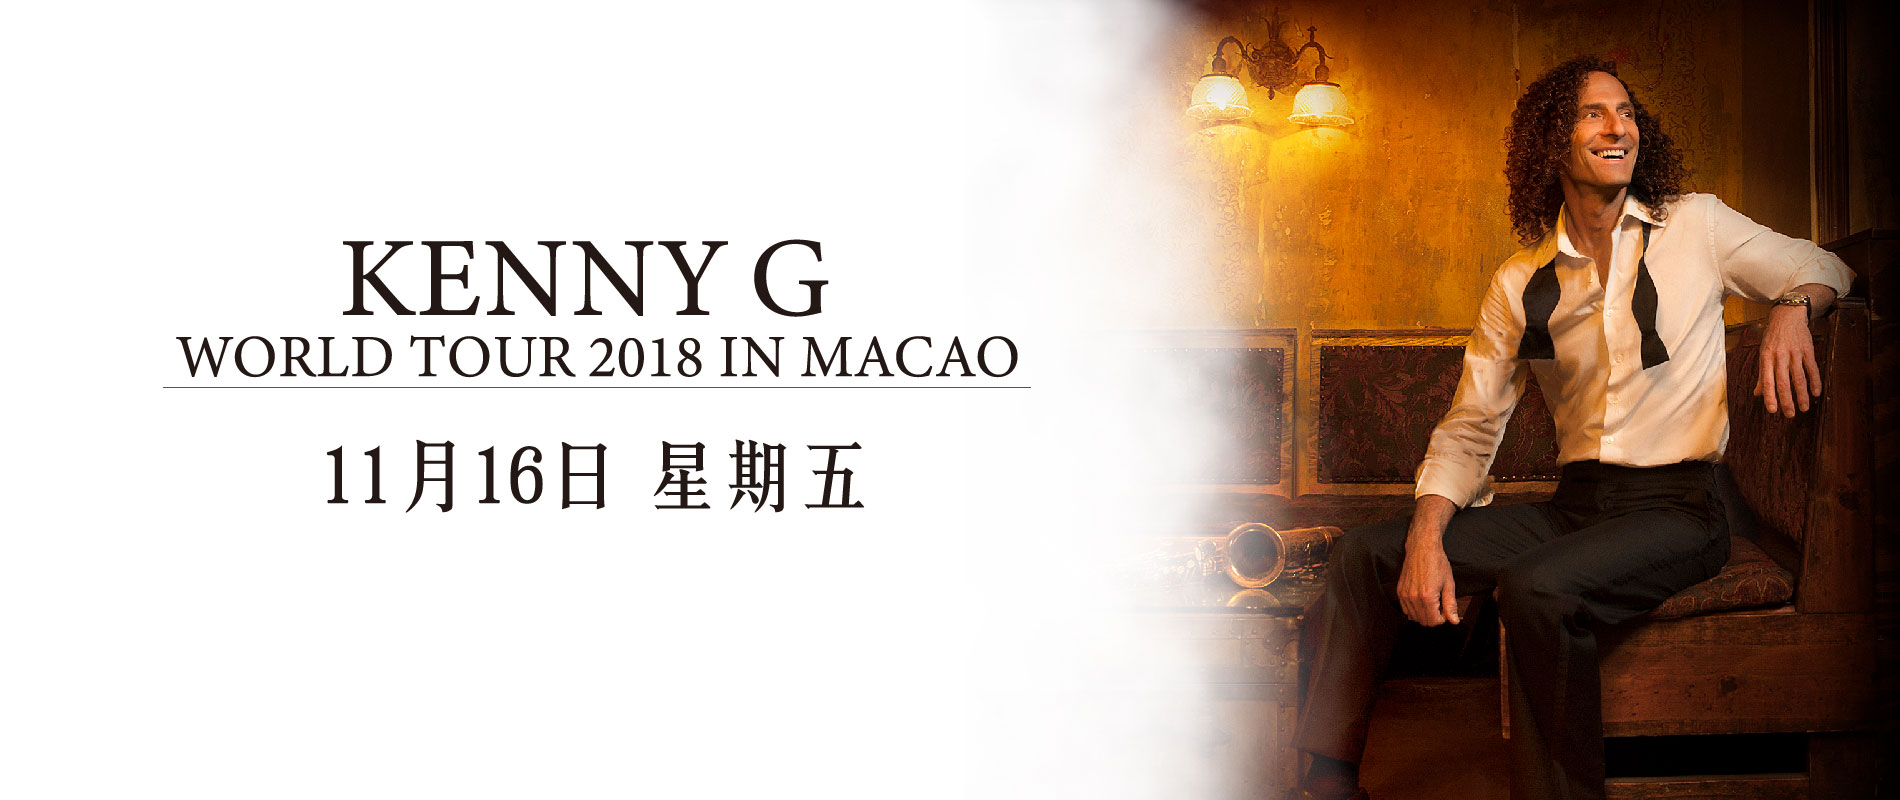 KENNY G WORLD TOUR 2018 IN MACAO - 威尼斯人劇場